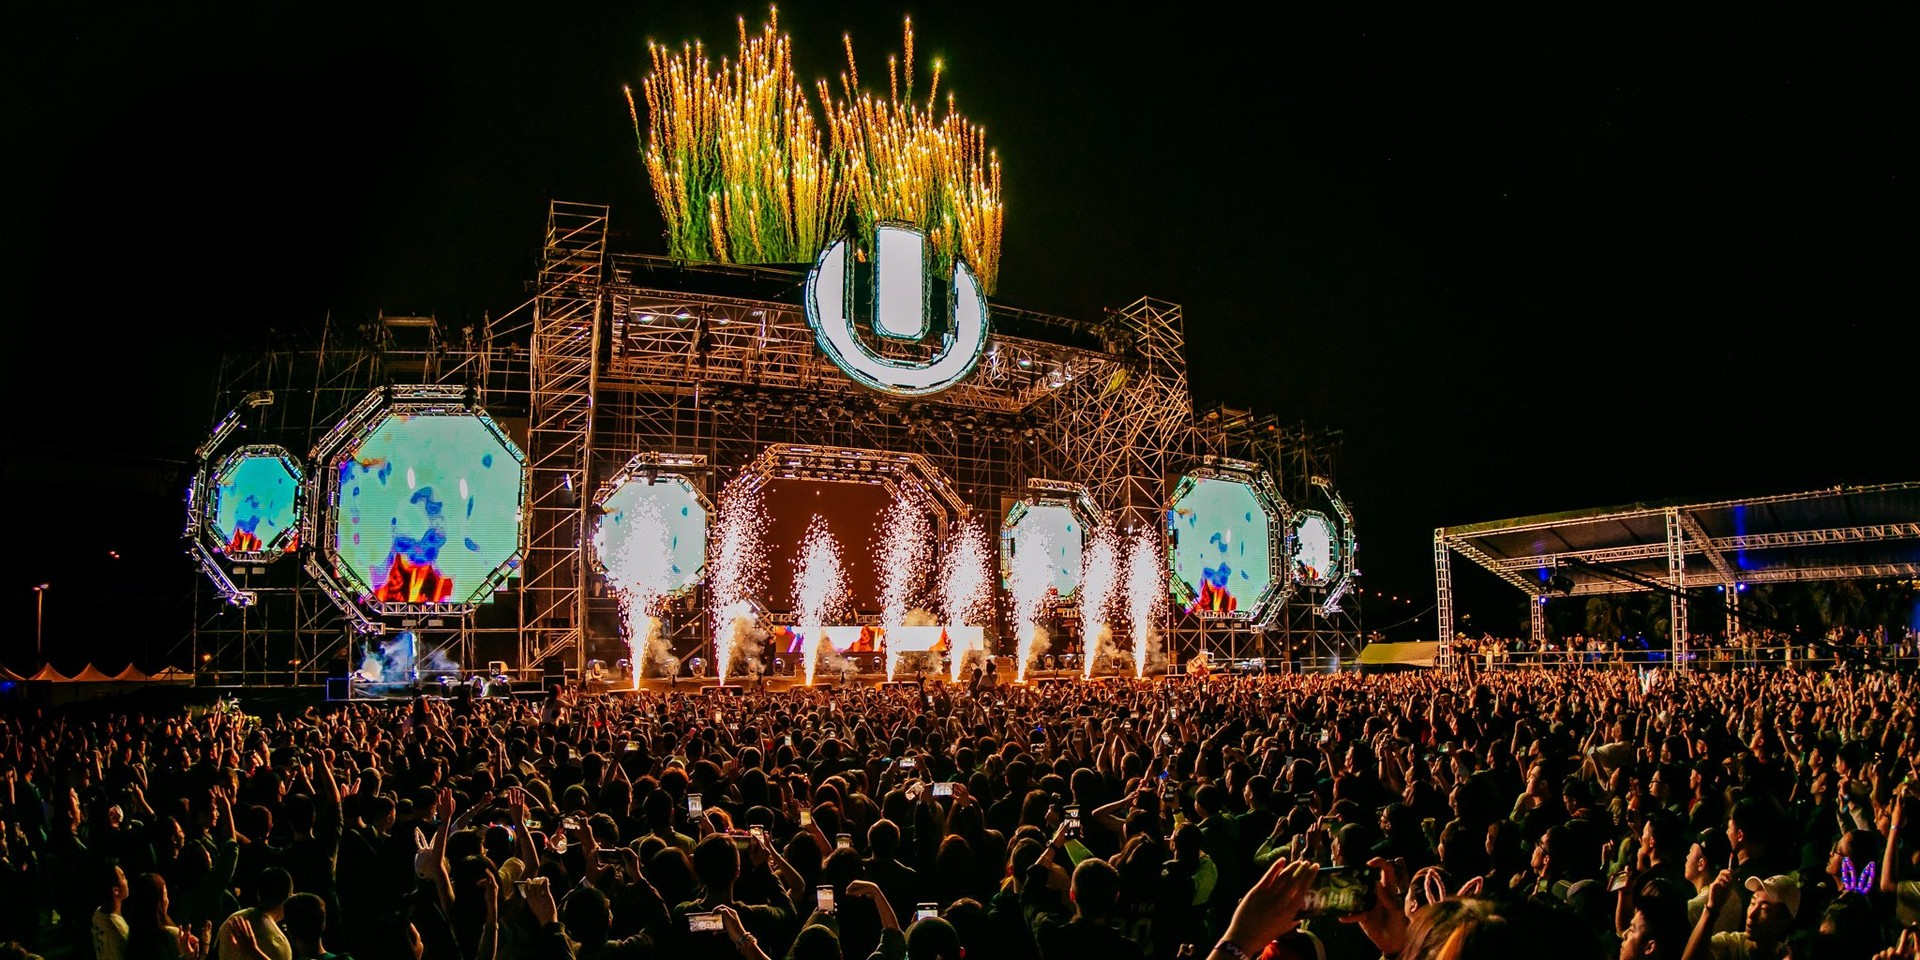 10,000 turn up for Ultra Music Festival 2020 in Taiwan, featuring Alesso, Kayzo, Slander, Vini Vici, and more – watch